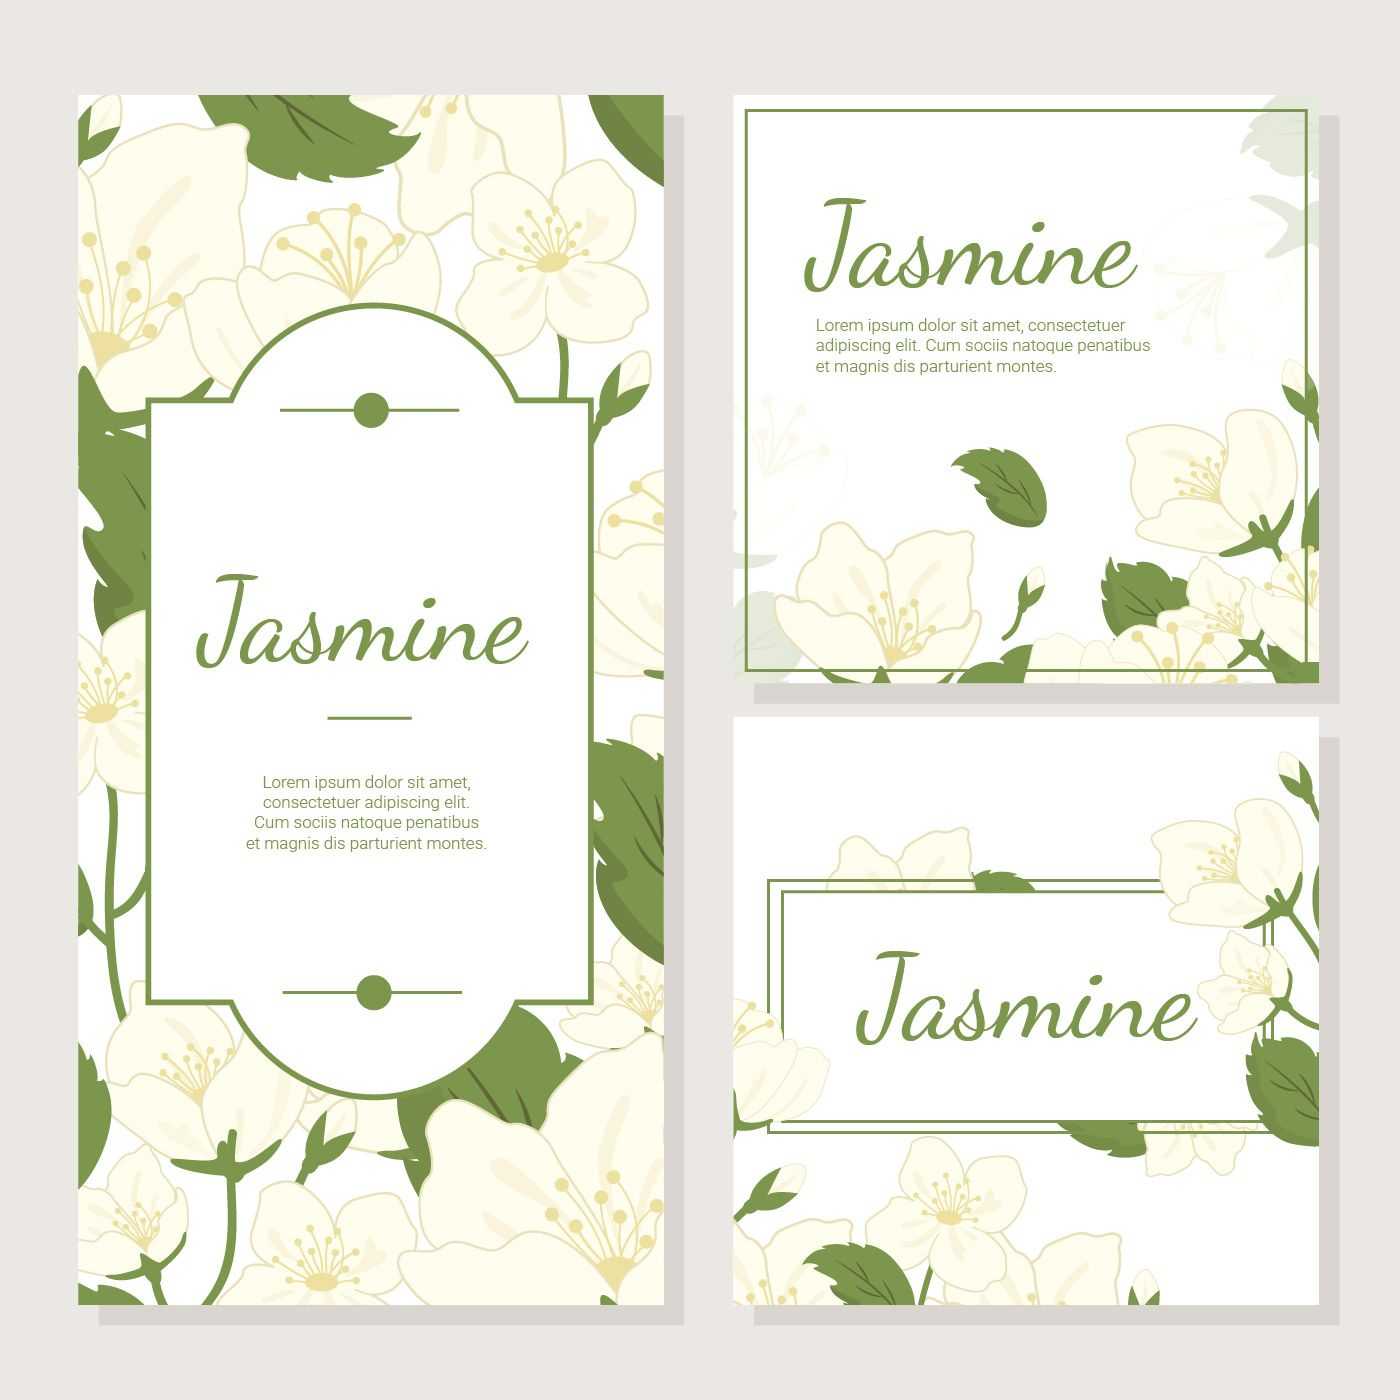 Wedding Hairstyle With Jasmine Flower: Invitation Card With Jasmine Flower Vector In 2019